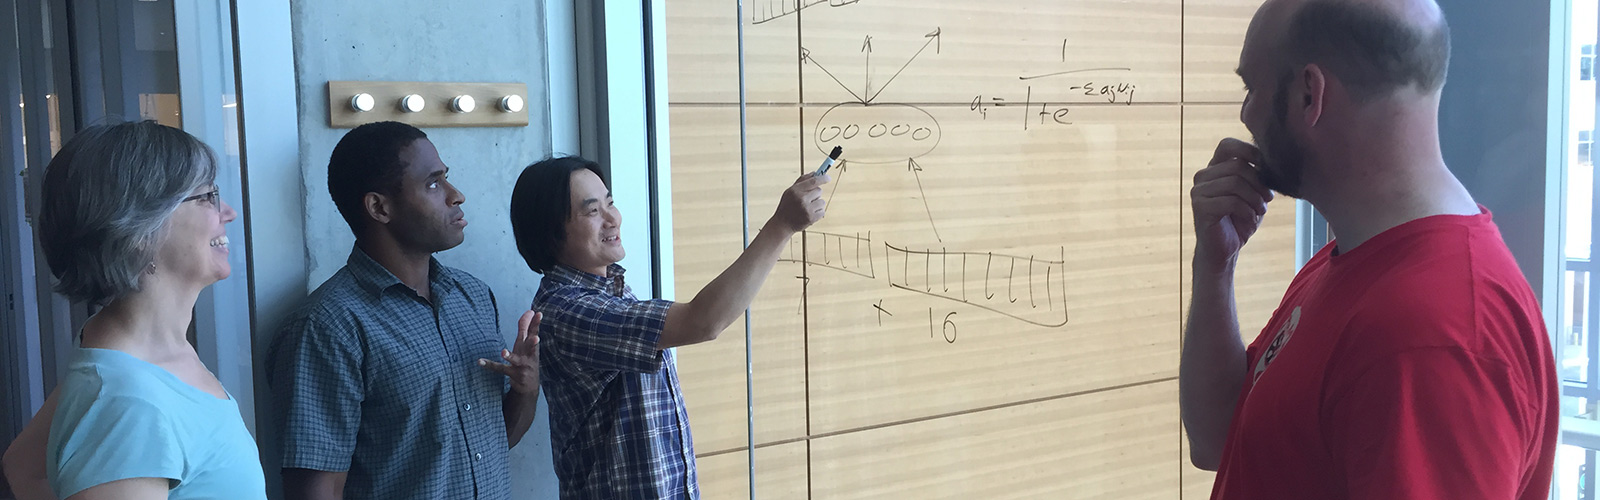 Researchers collaborate, aided by a diagram drawn on a window.